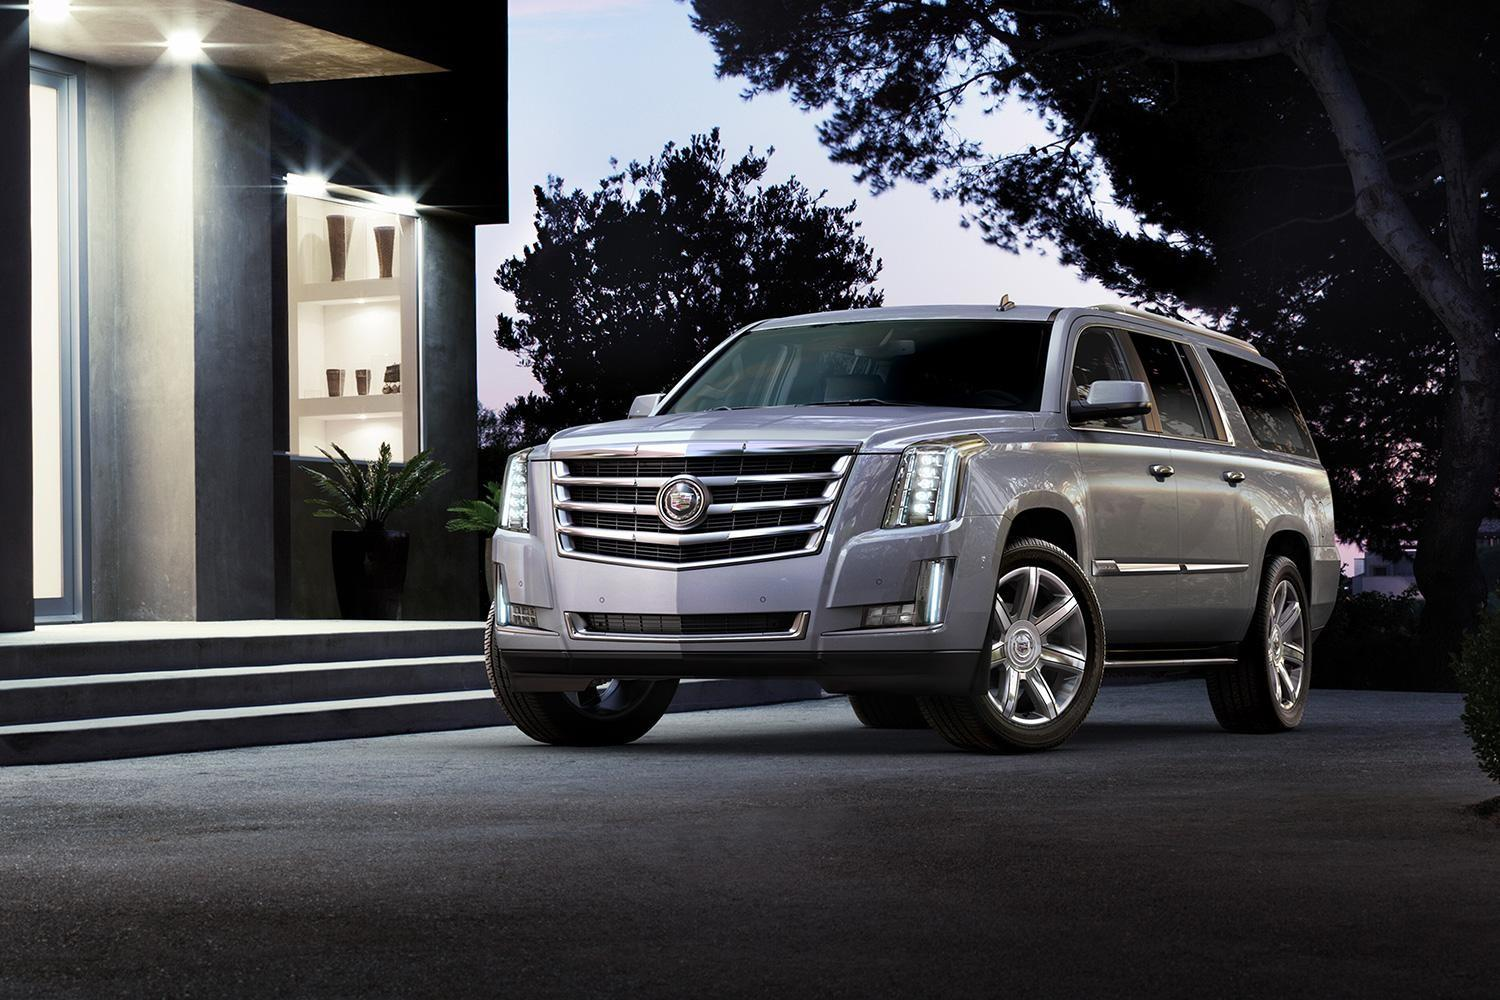 cadillac pickup truck 2013. 2015 cadillac escalade hybrid it could happen pickup truck 2013 o